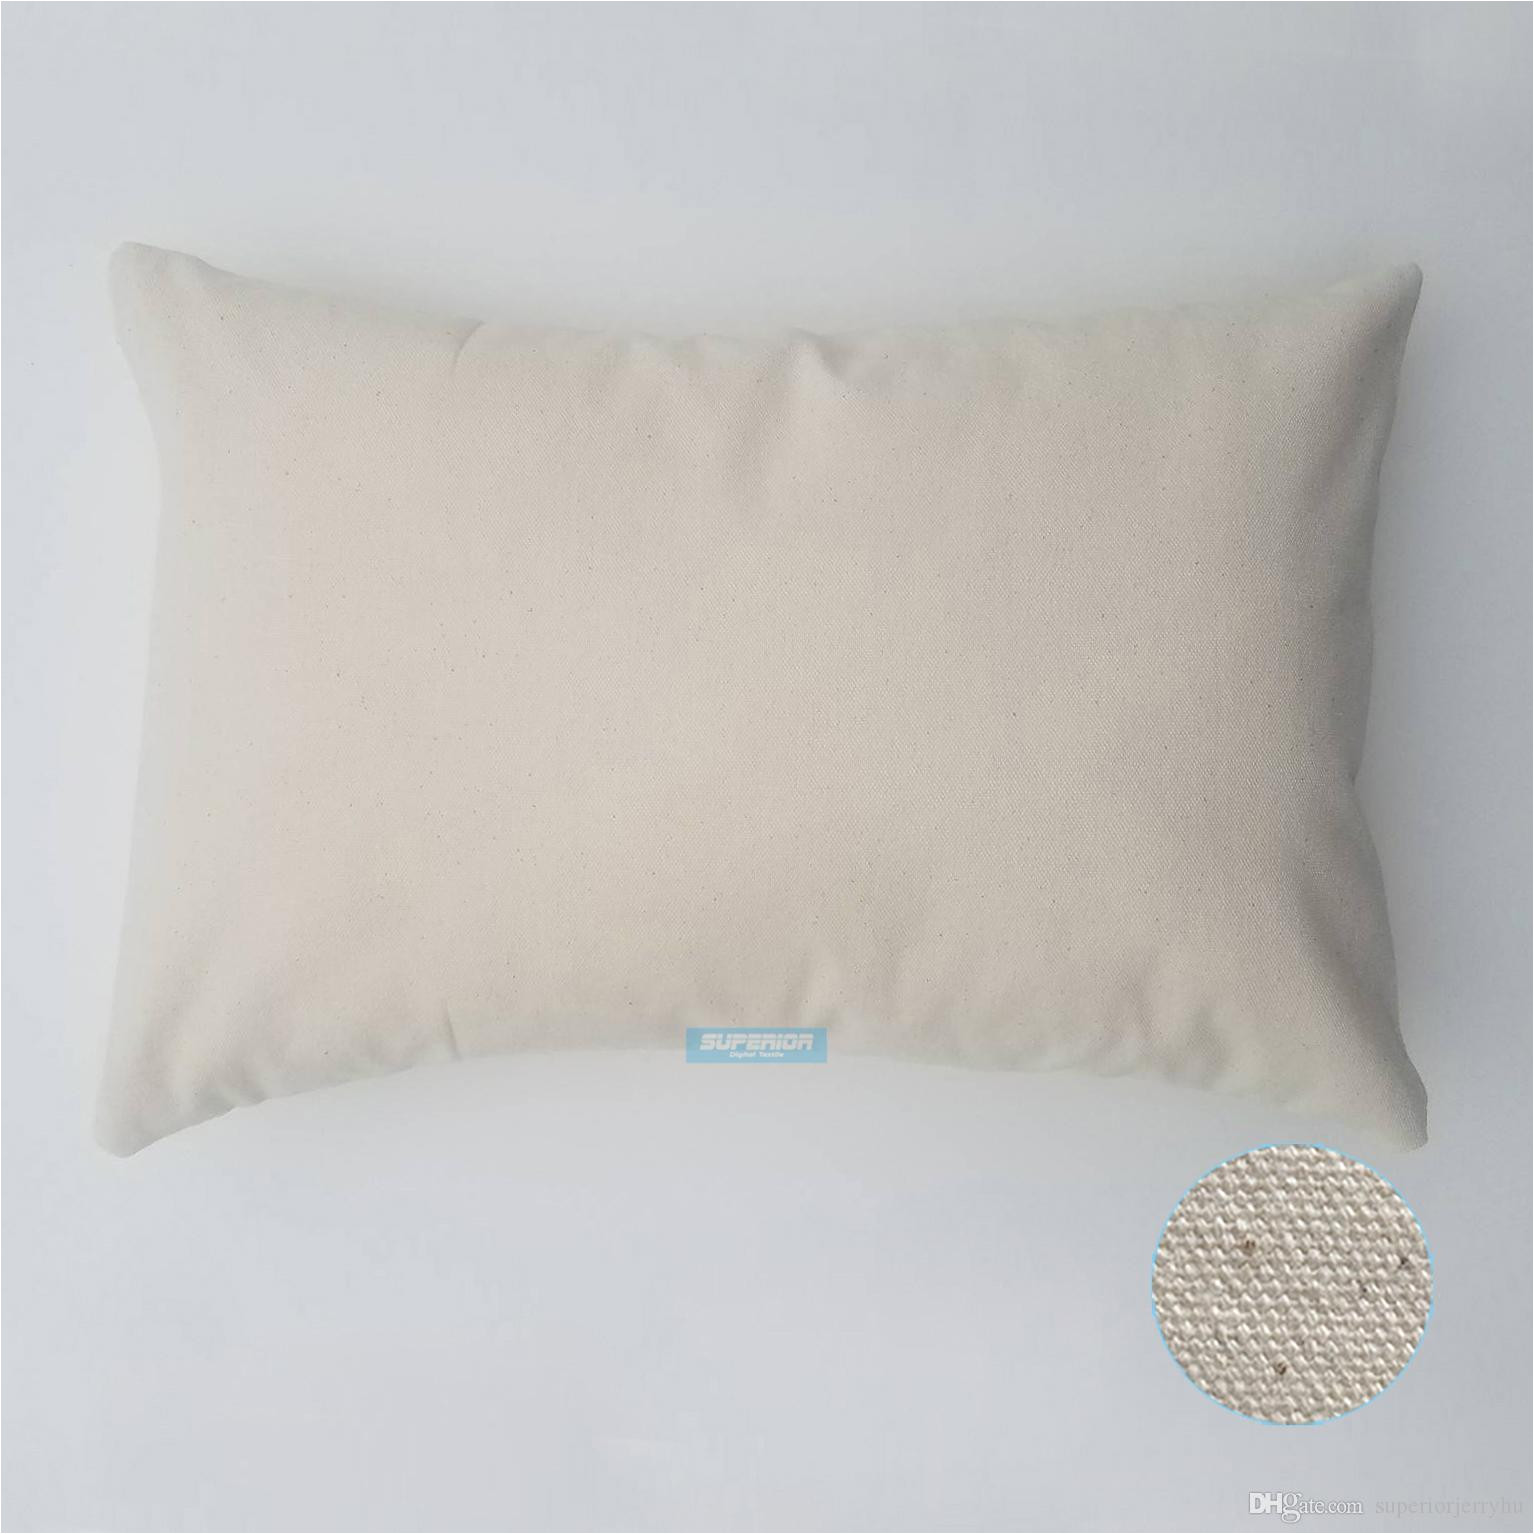 12x18 inches wholesale 8oz white or natural cotton canvas pillow cover blanks perfect for stencils painting embroidery htv exterior cushions lawn chair